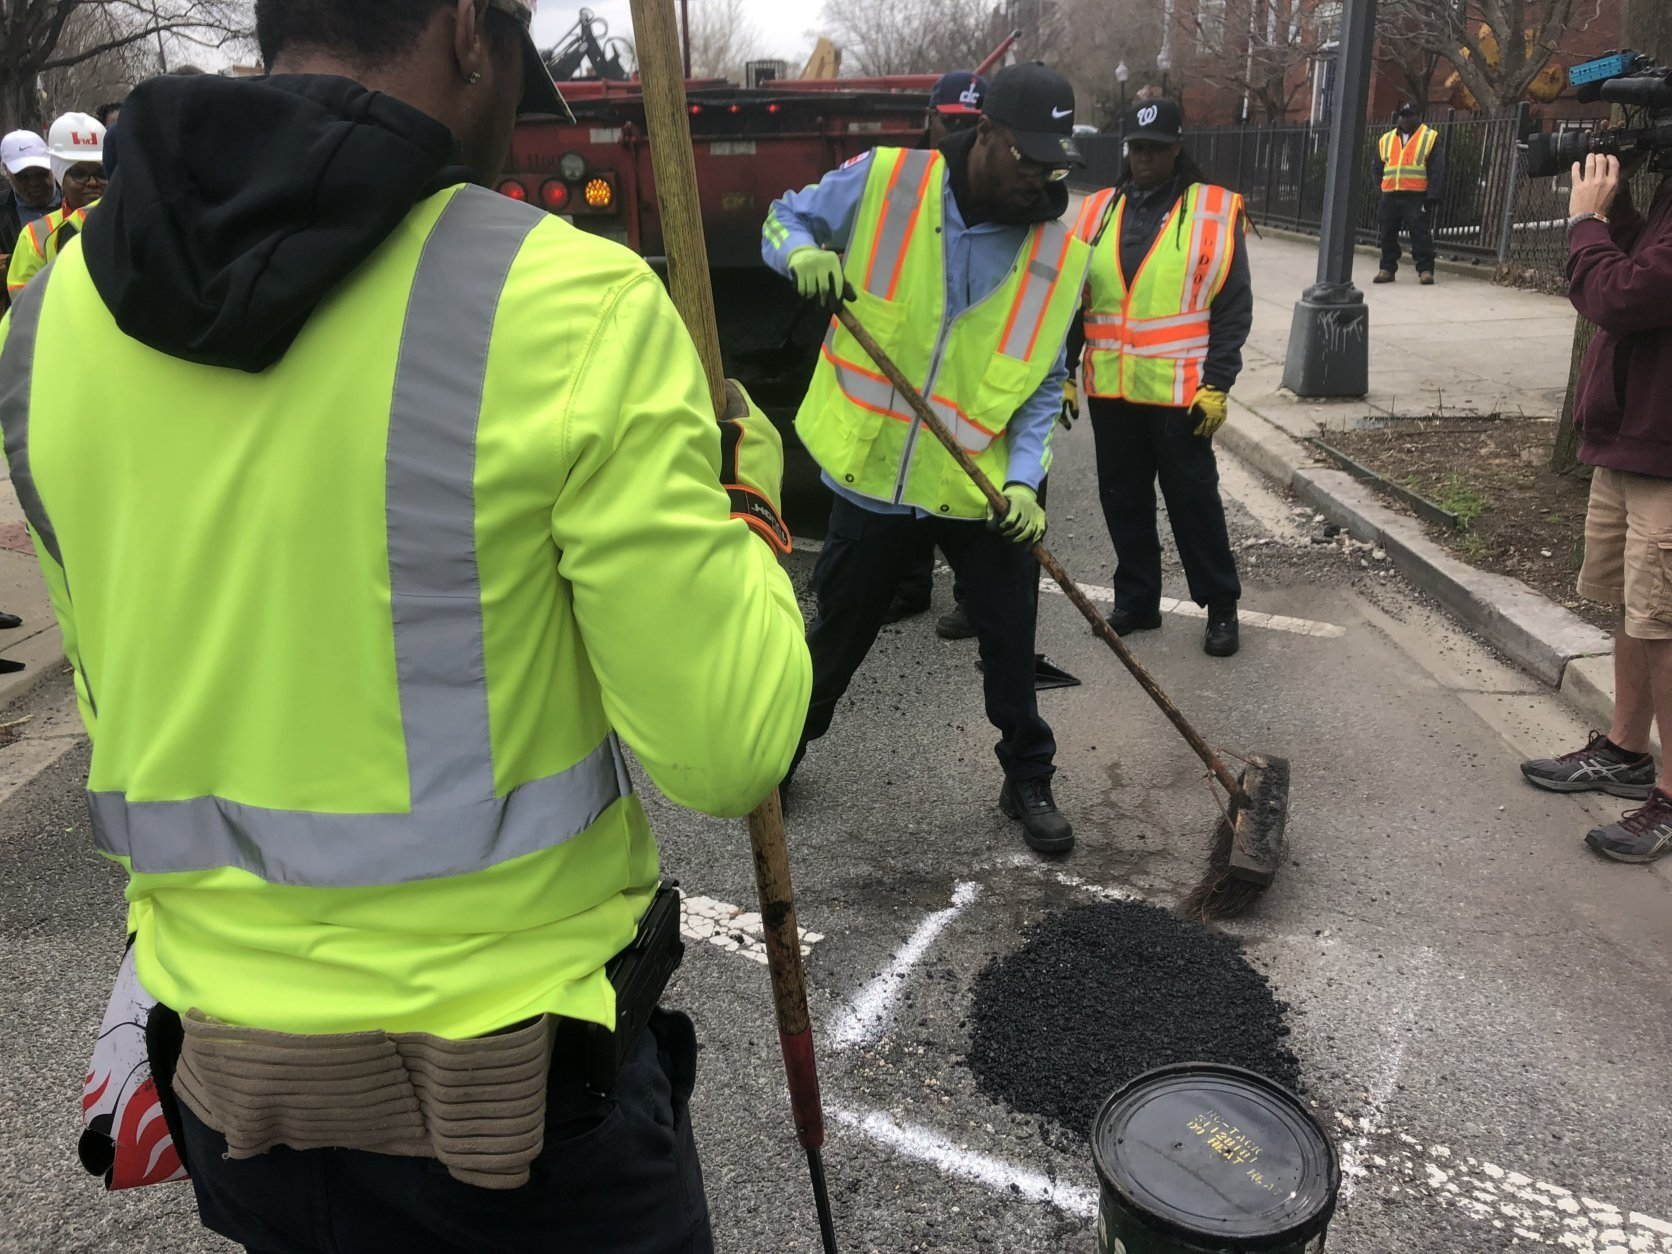 """The region has experienced record rainfall last year in 2018, which has created what looks like a record number of potholes,"" Mayor Muriel Bowser said. (WTOP/Max Smith)"